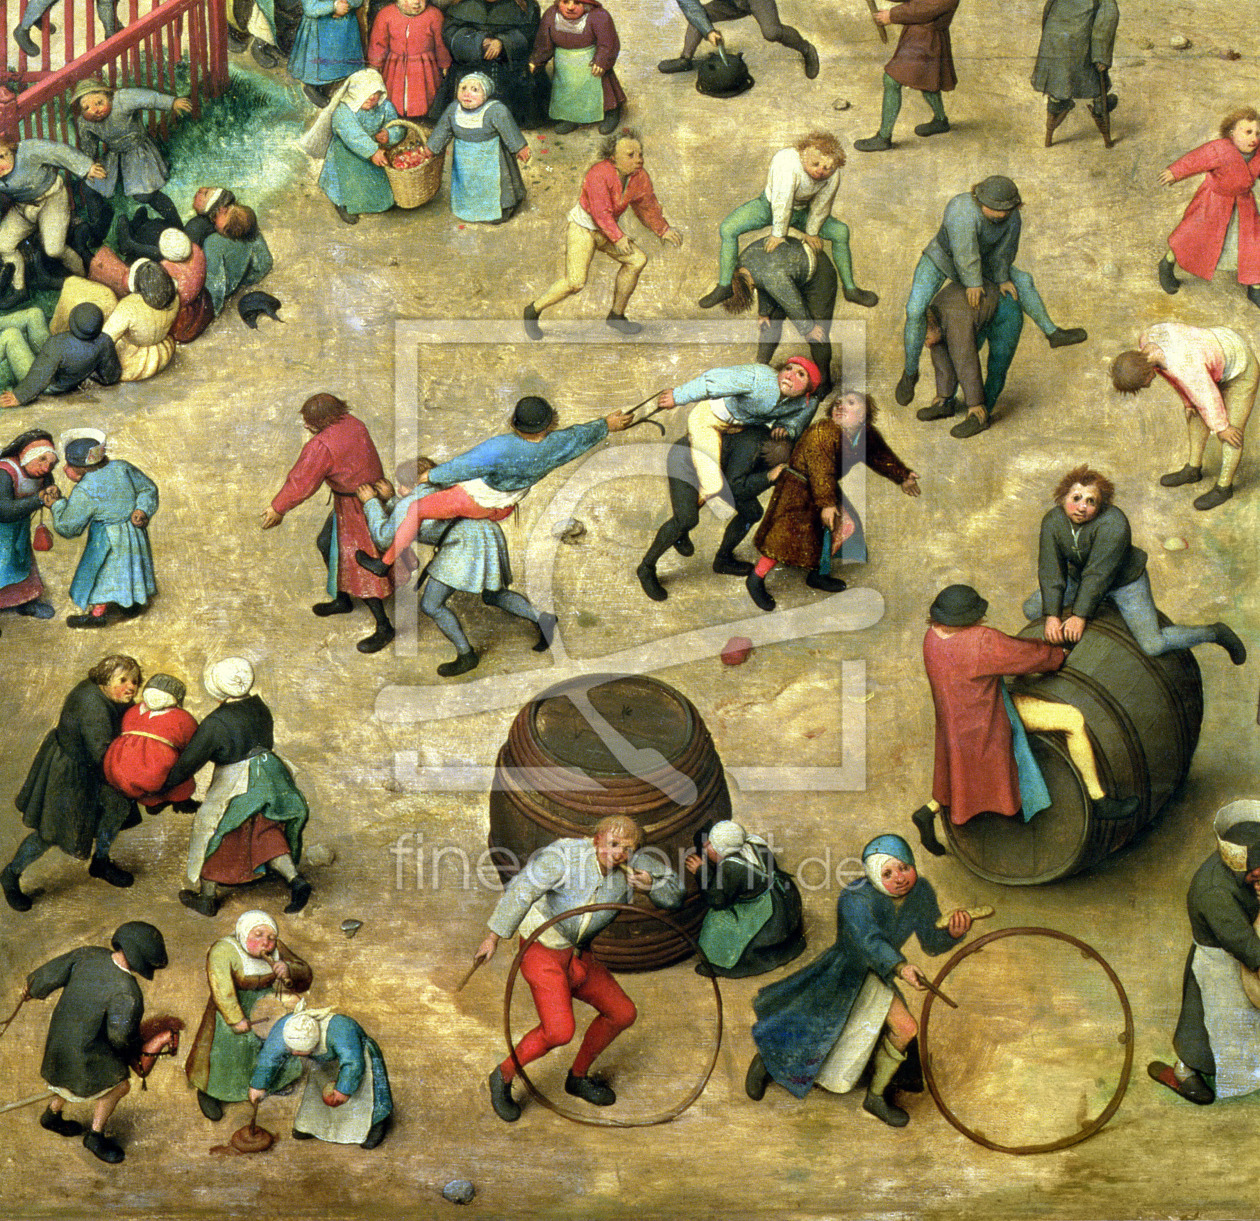 Bild-Nr.: 31002835 Children's Games : detail of bottom section showing various games, 1560 erstellt von Bruegel, Pieter the Elder